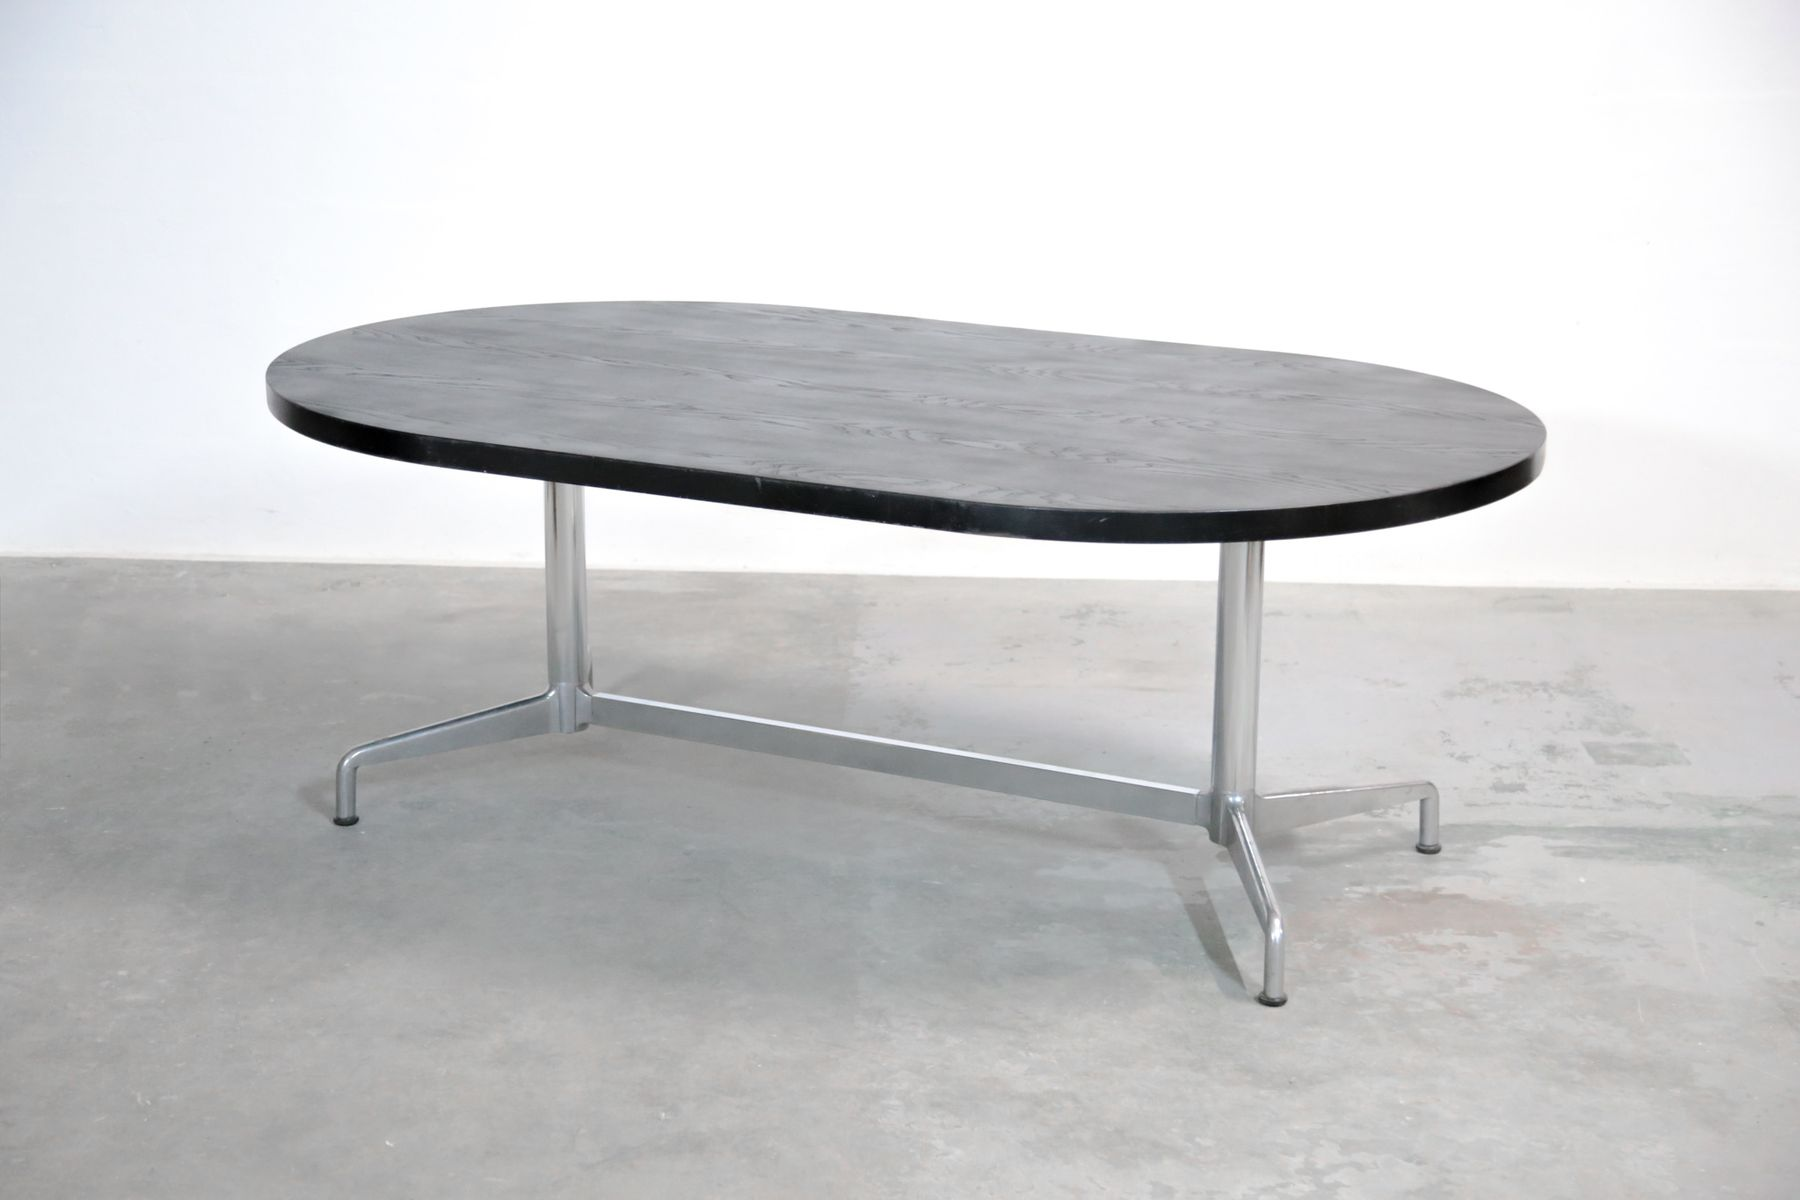 Grande table de salle manger par giancarlo piretti for Grande table de salle a manger 8 personnes